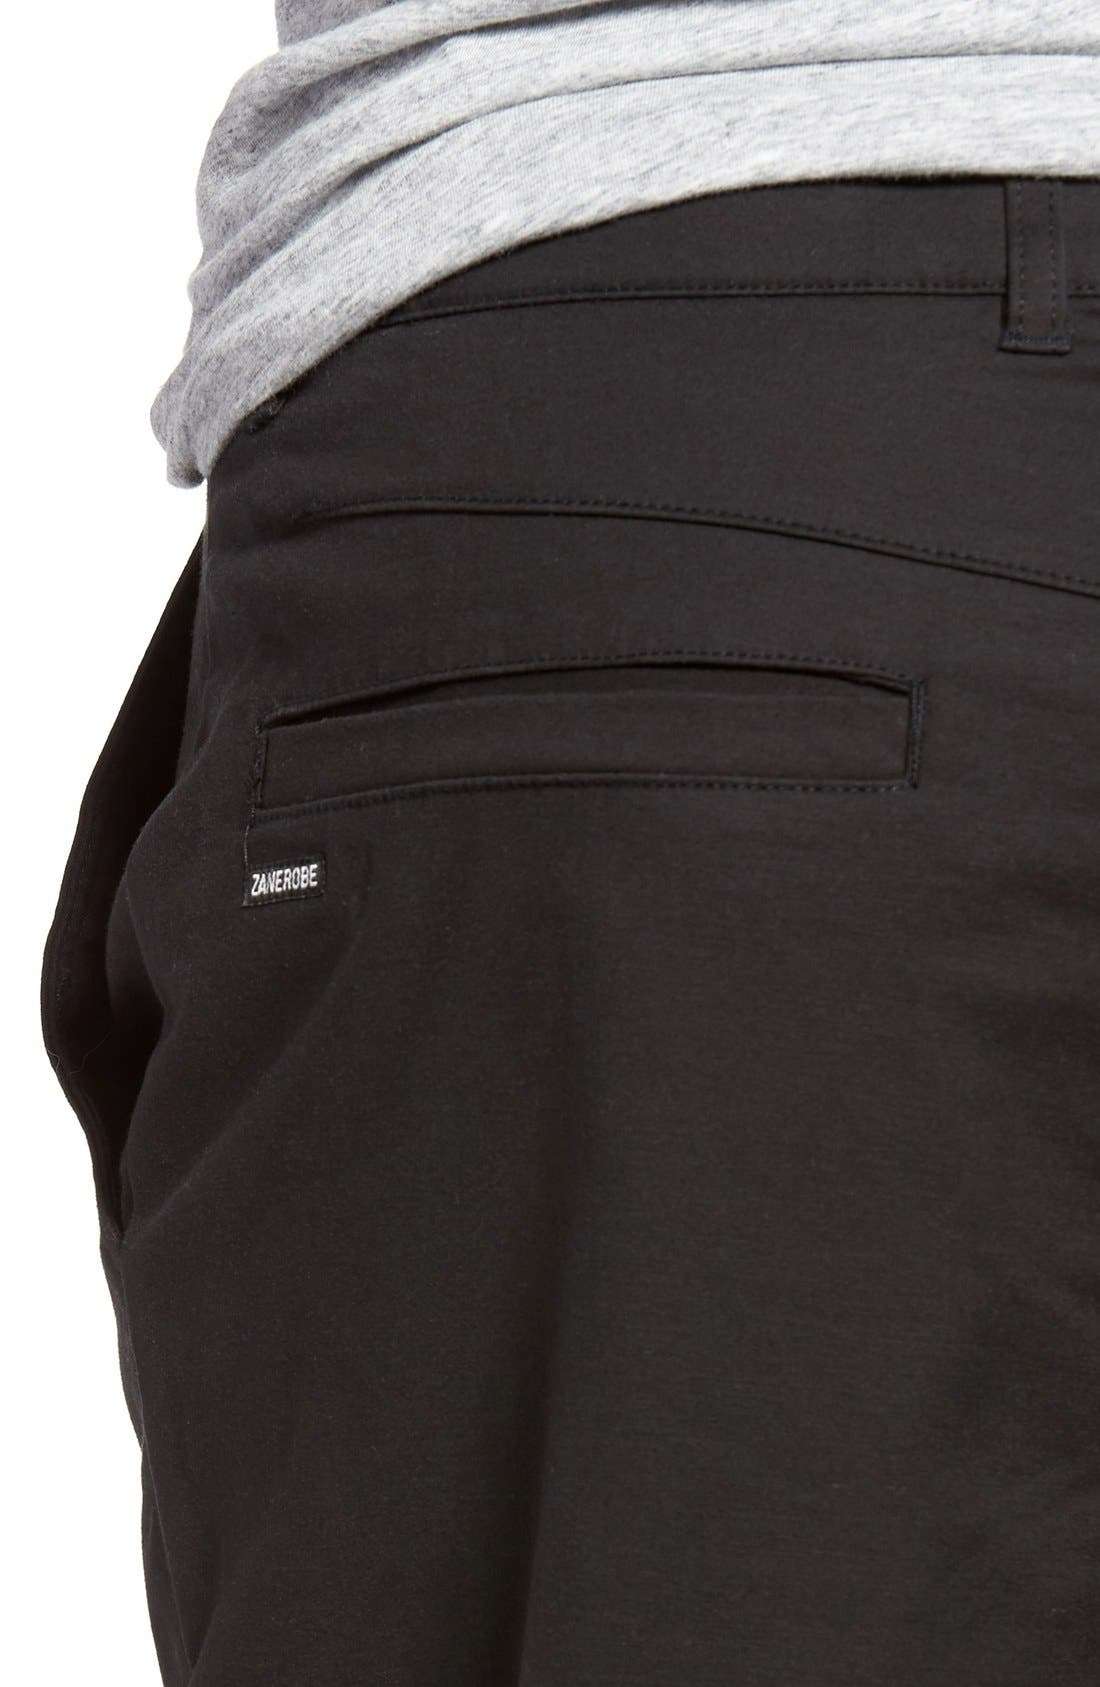 'Sharpshot' Slouchy Skinny Fit Chinos,                             Alternate thumbnail 12, color,